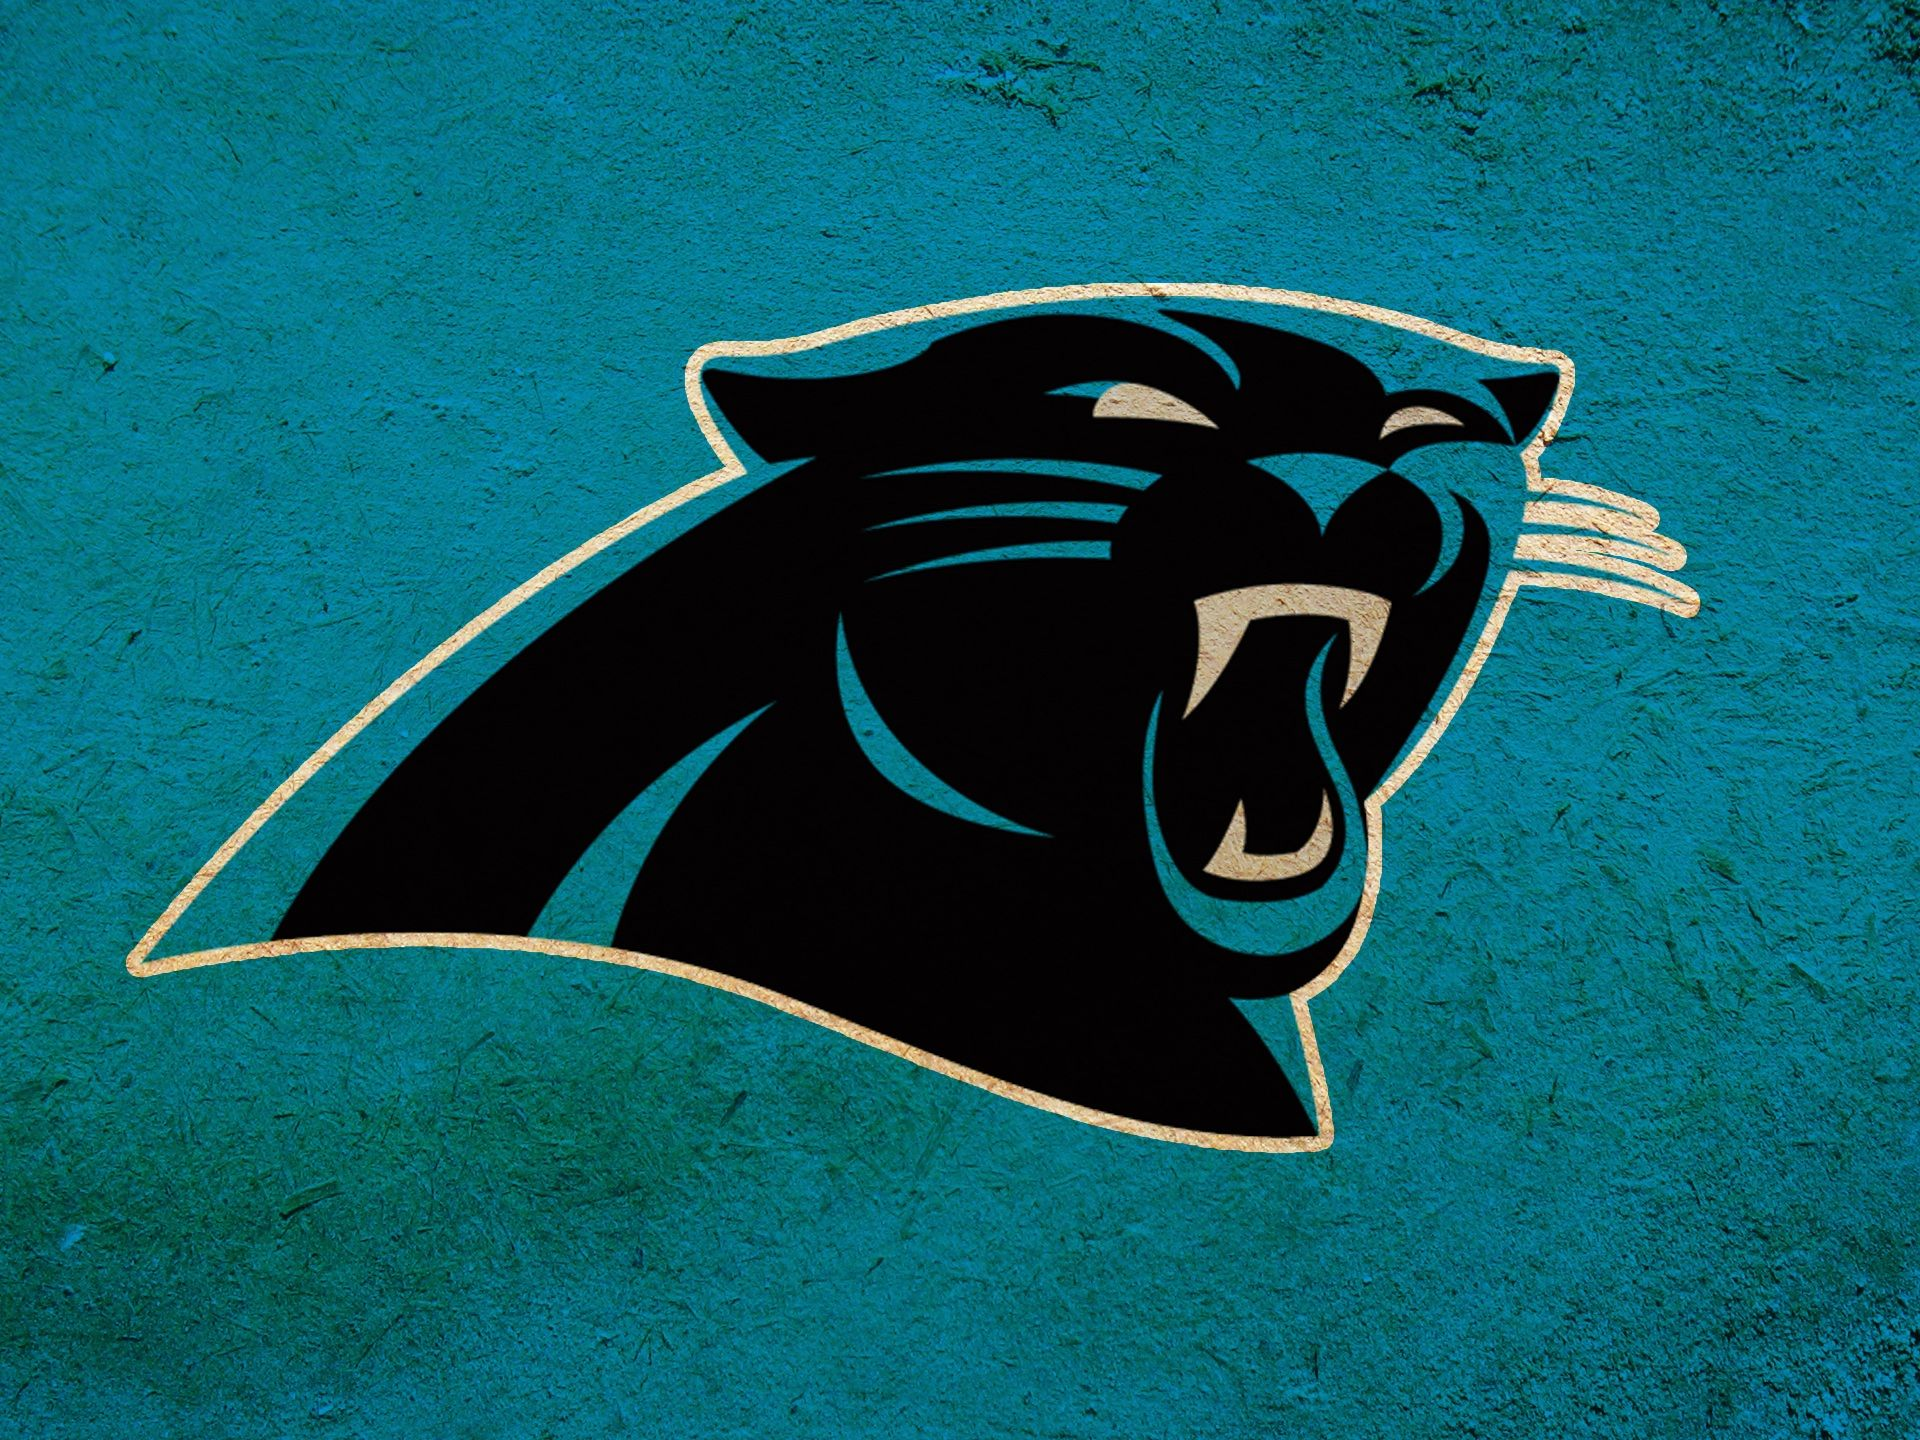 Panthers wallpaper find best latest panthers wallpaper for - Carolina panthers mobile wallpaper ...